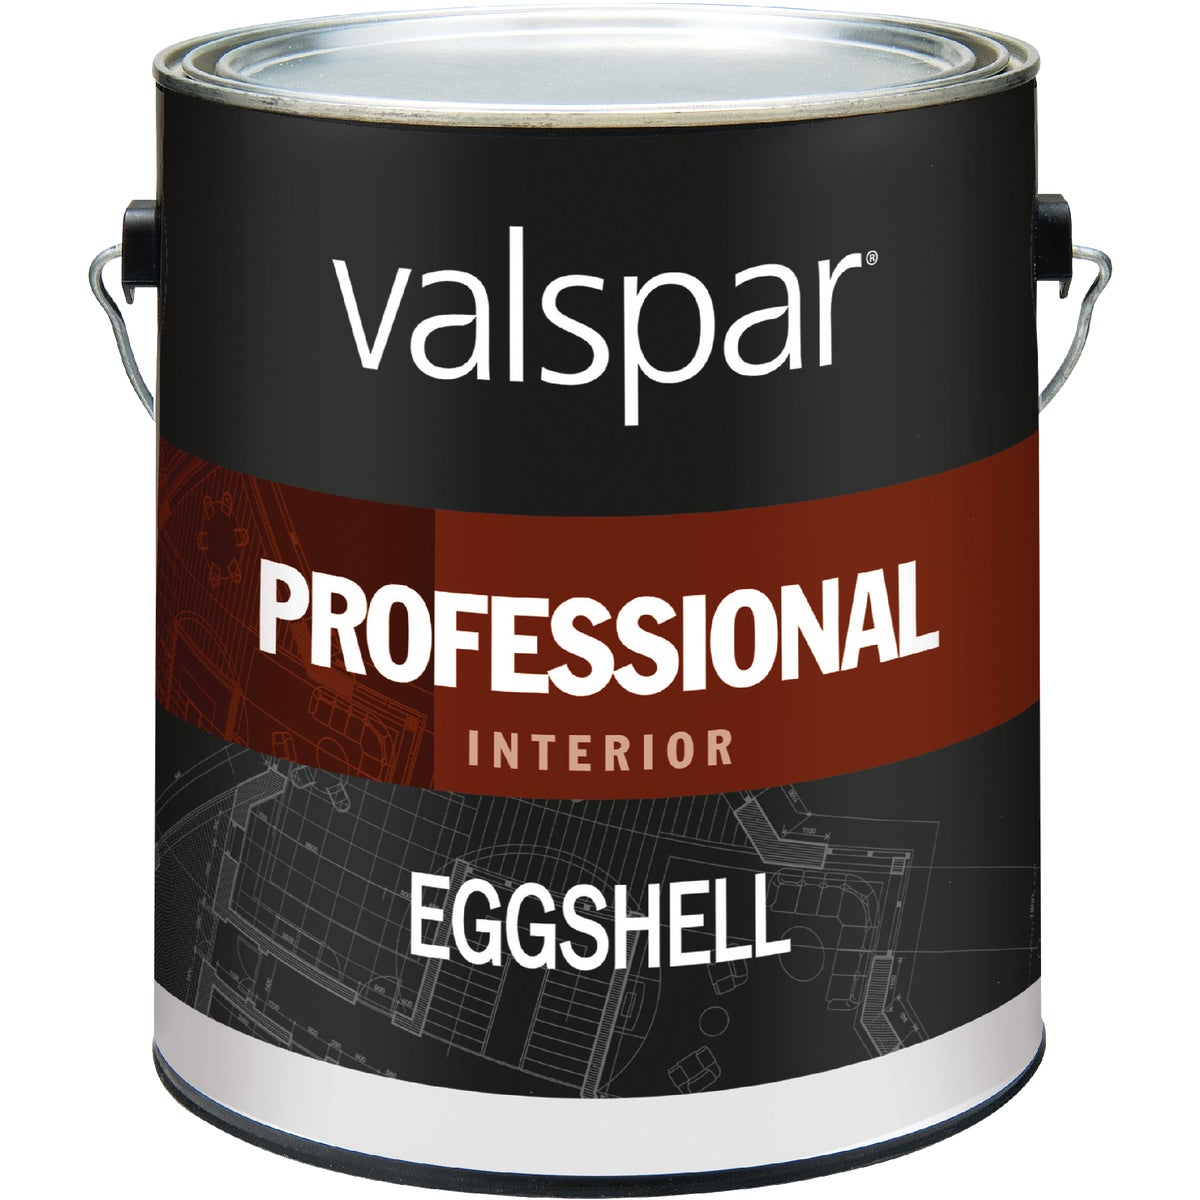 INT EGG MED BASE PAINT - 045.0011812.007 by Valspar Corp